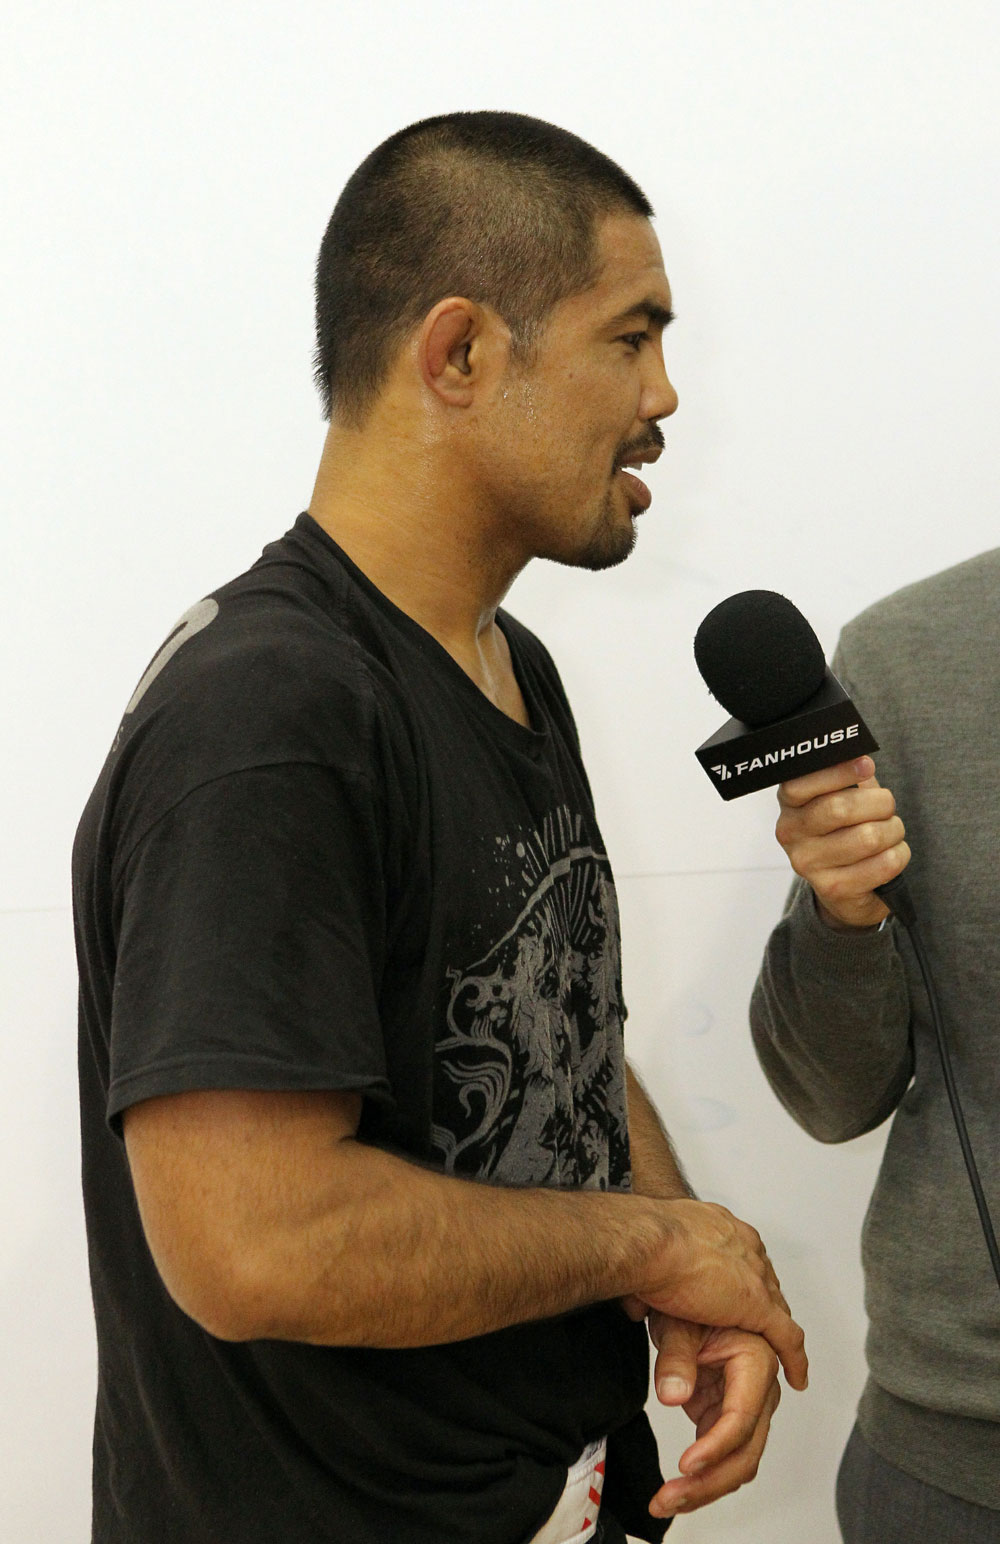 Mark Munoz answers questions from the media at the UFC 123 open workouts at the Detroit Athletic Club in Detroit, Michigan on November 18, 2010  (Photo by Josh Hedges/Zuffa LLC/Zuffa LLC via Getty Images)